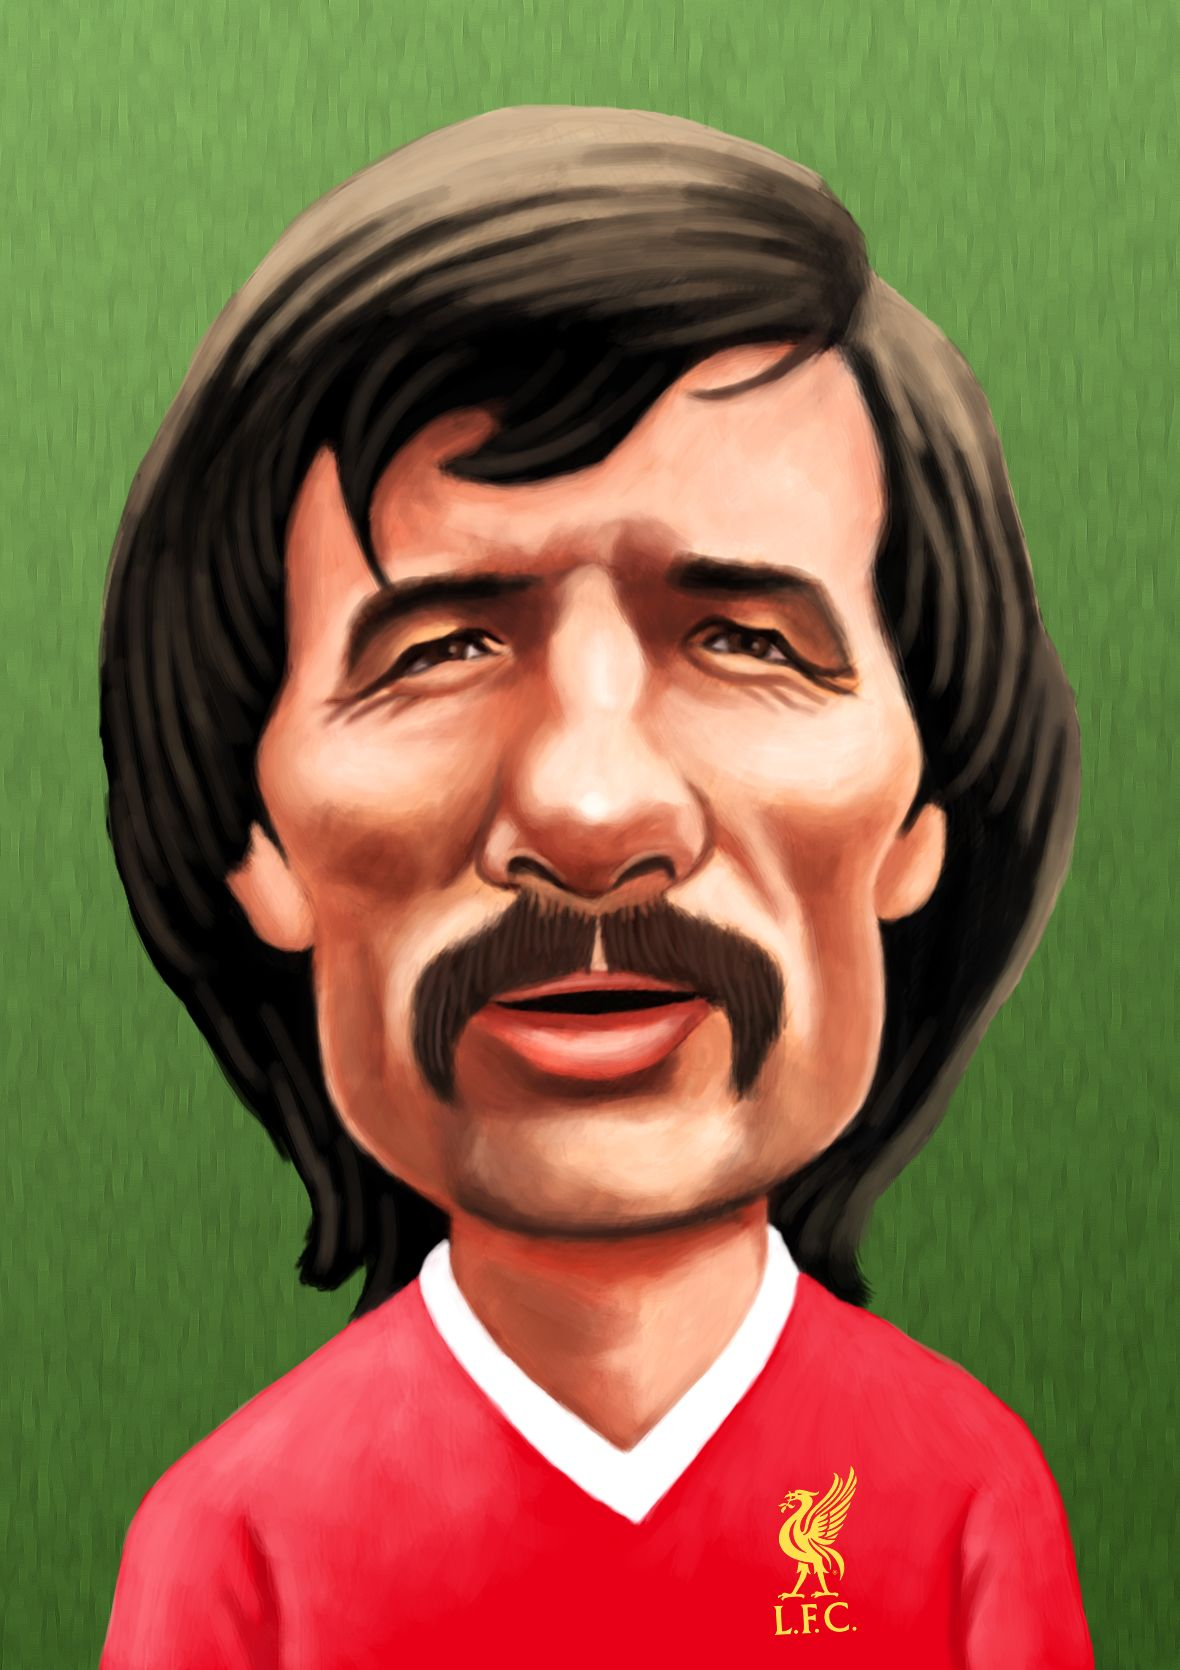 tommy smith liverpool fc